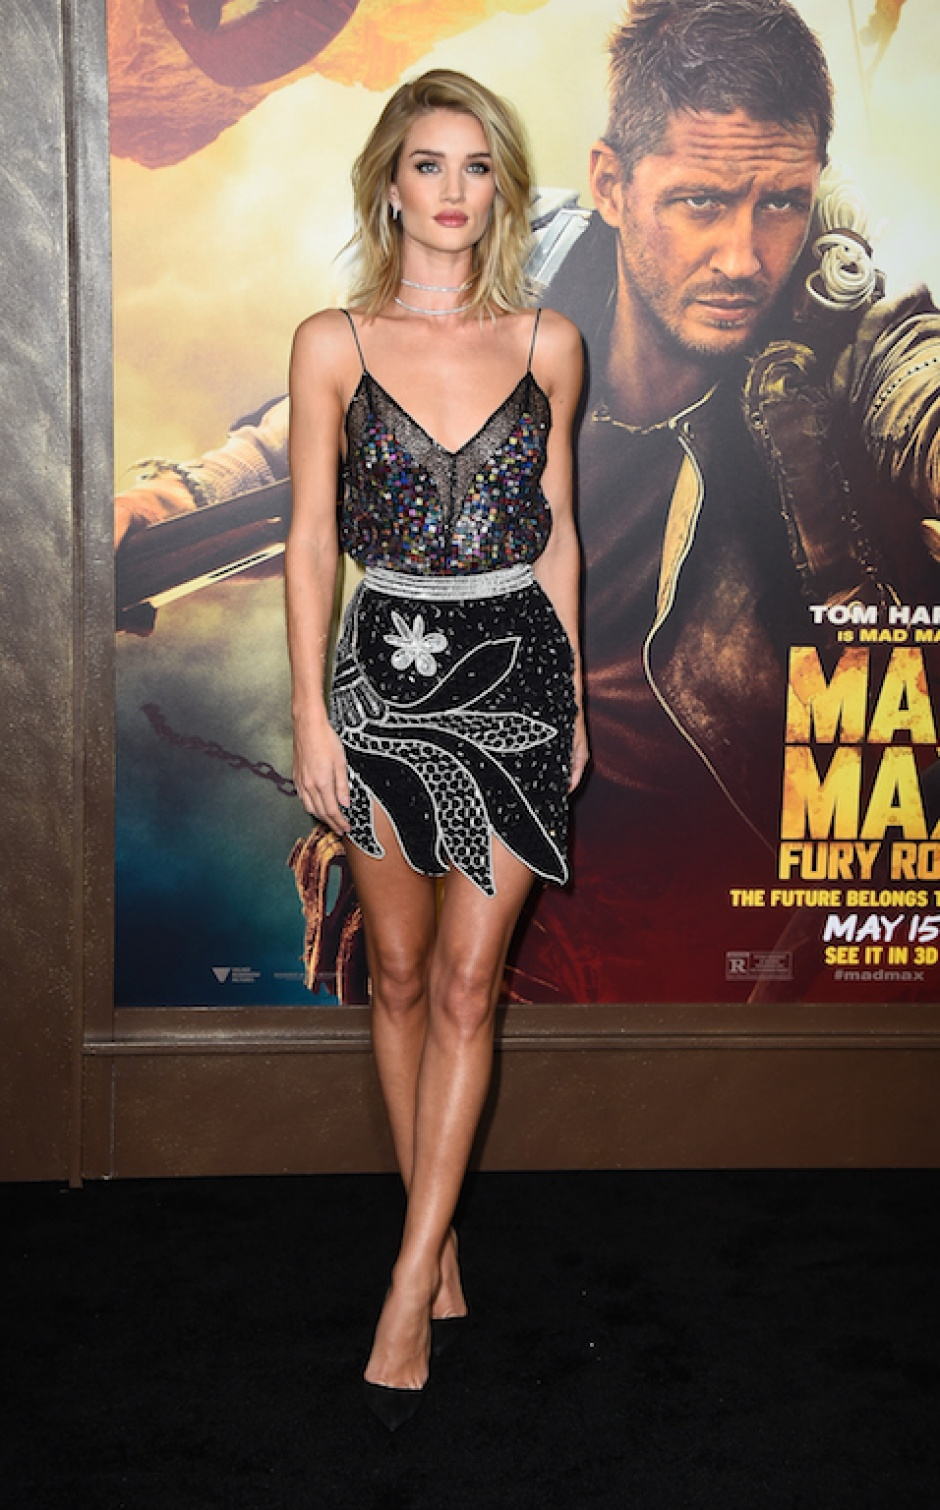 Rosie Huntington-Whiteley wearing a Rodarte dress at the 'Mad Max: Fury Road' premiere